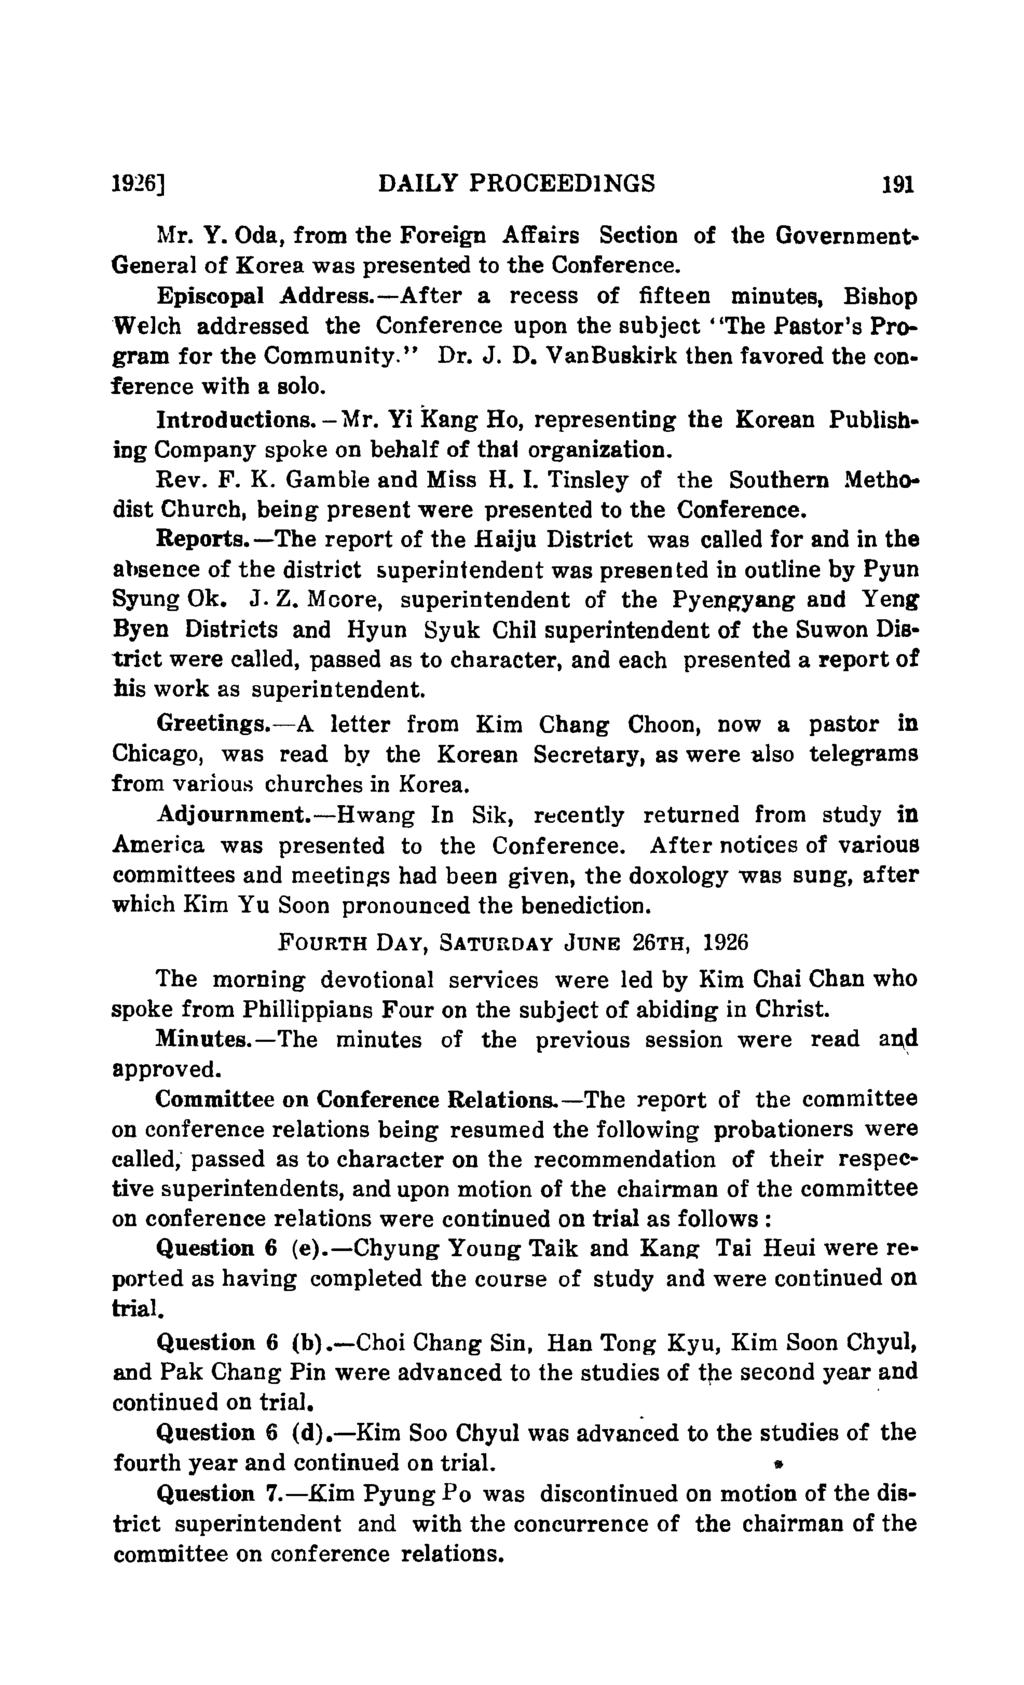 1926] DAILY PROCEEDINGS 191 Mr. Y. Oda, from the Foreign Affairs Section of the Government General of Korea was presented to the Conference. Episcopal Address.